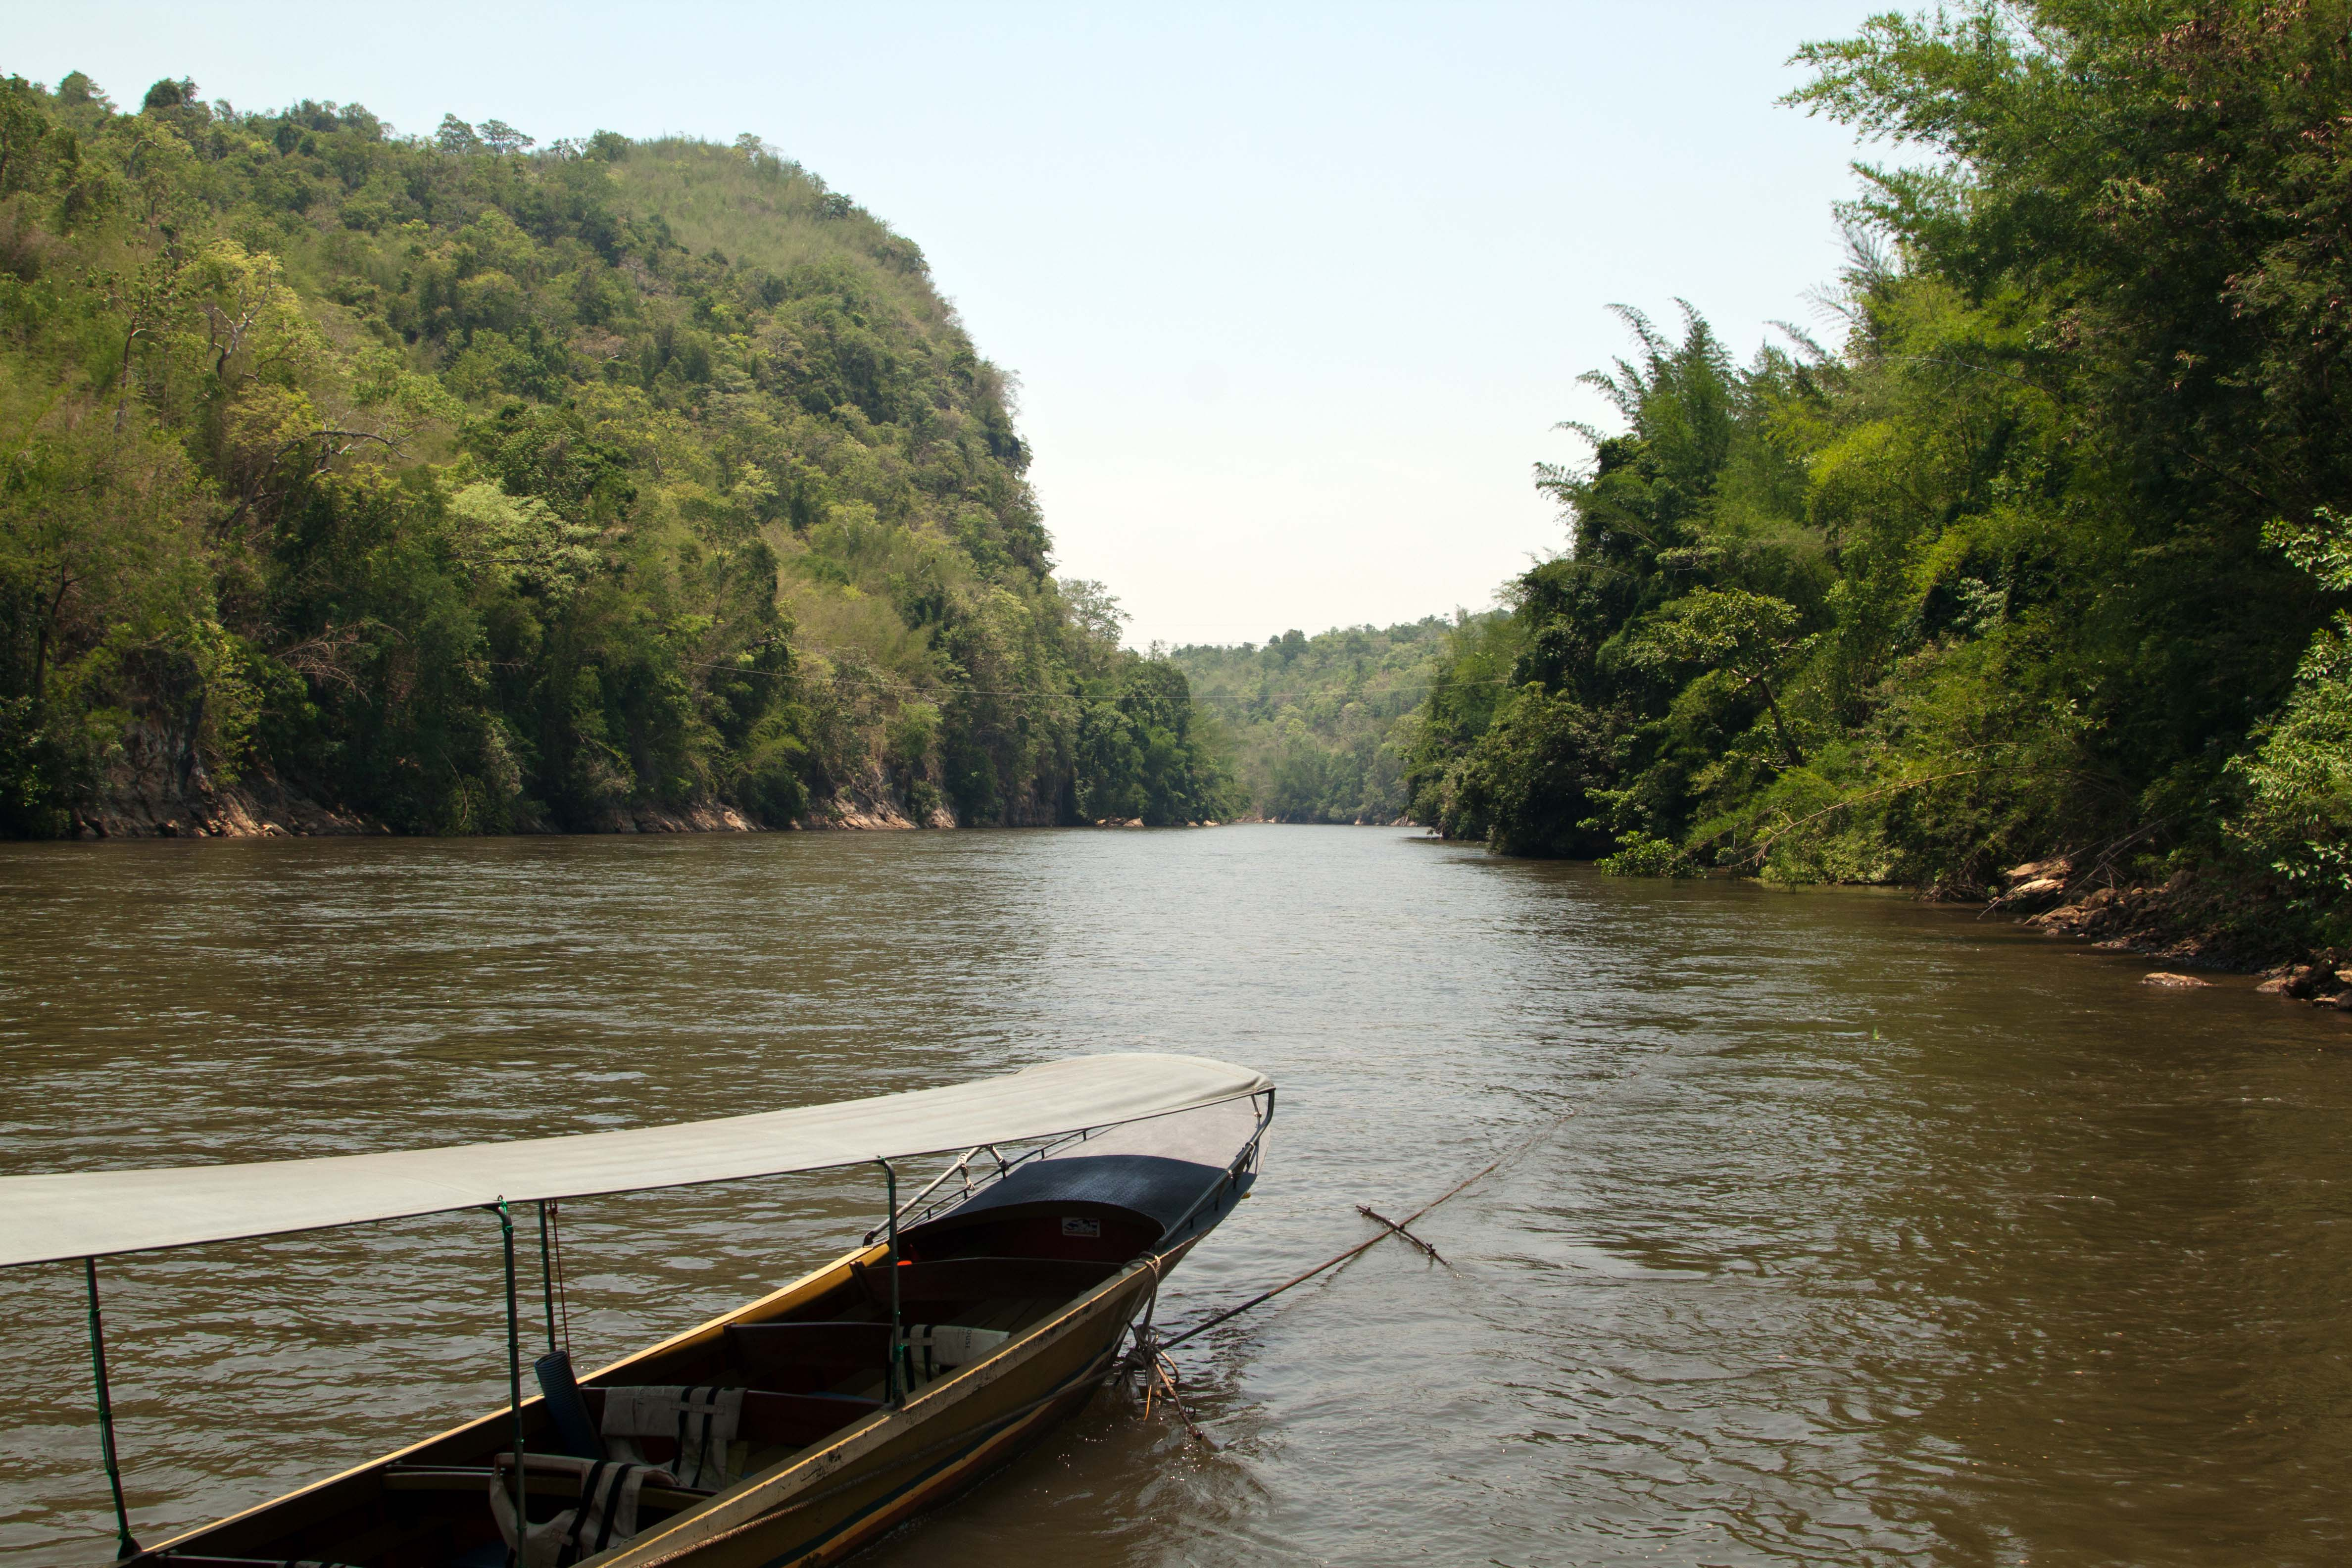 Anlegestelle Kwai River Yok Nationalpark River Kwai Jungle Lodge Thailand